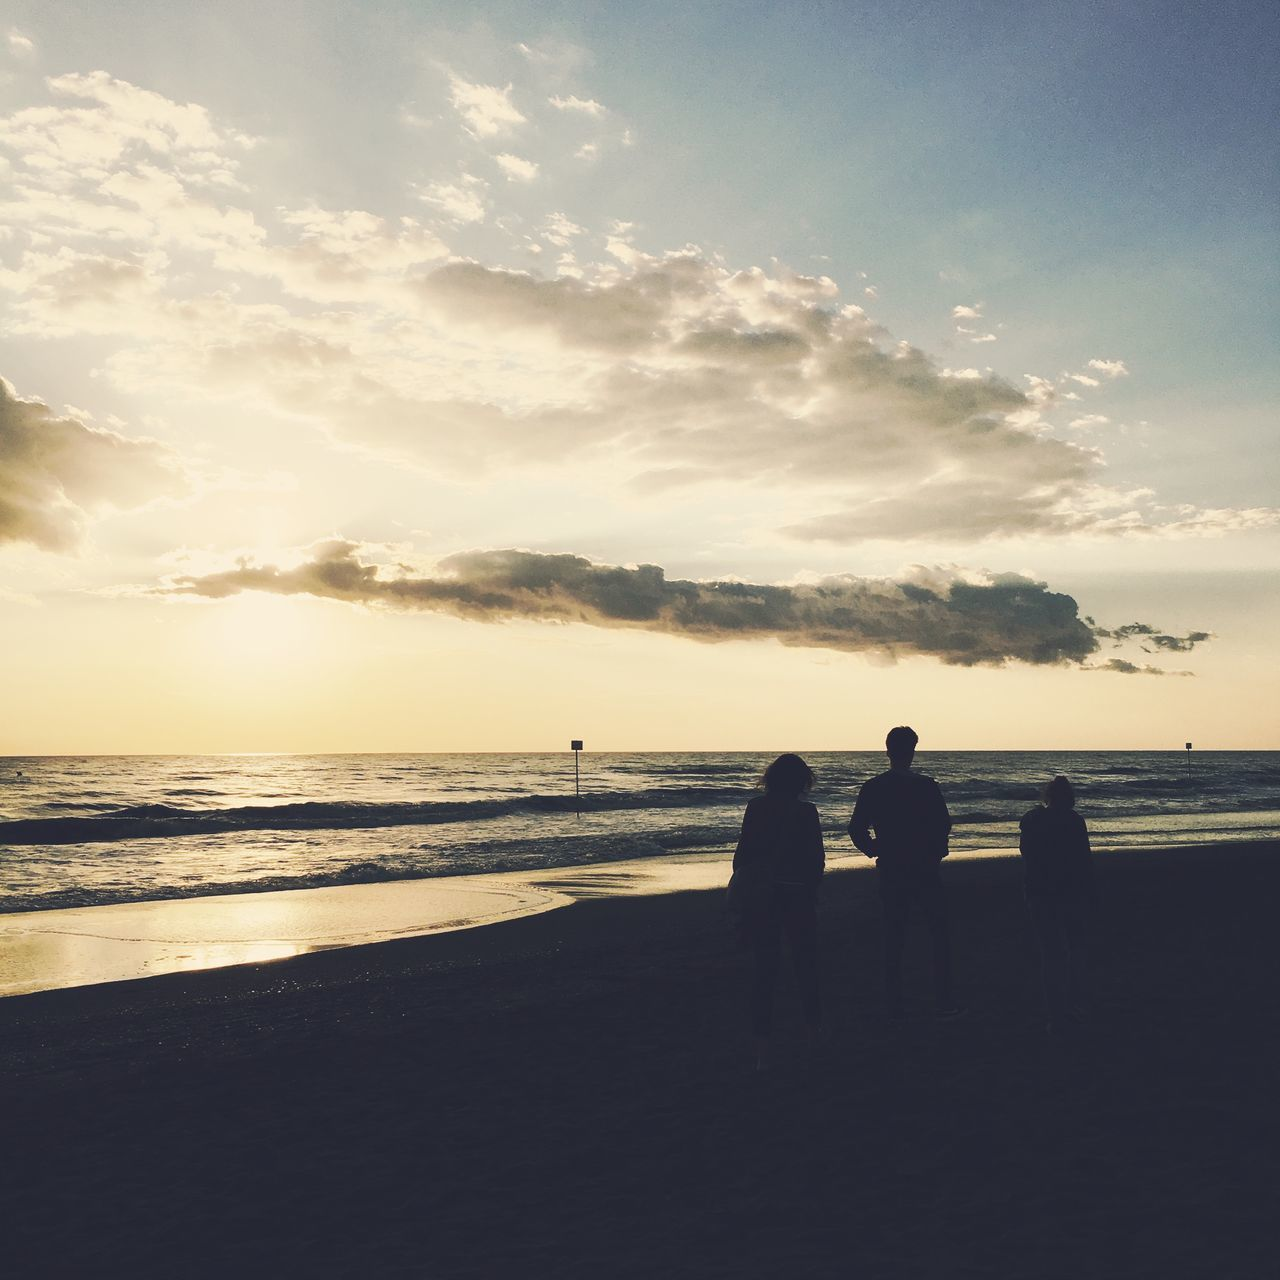 sea, beach, water, silhouette, sky, sunset, horizon over water, nature, togetherness, sand, cloud - sky, beauty in nature, scenics, tranquility, tranquil scene, standing, leisure activity, real people, outdoors, men, vacations, friendship, day, people